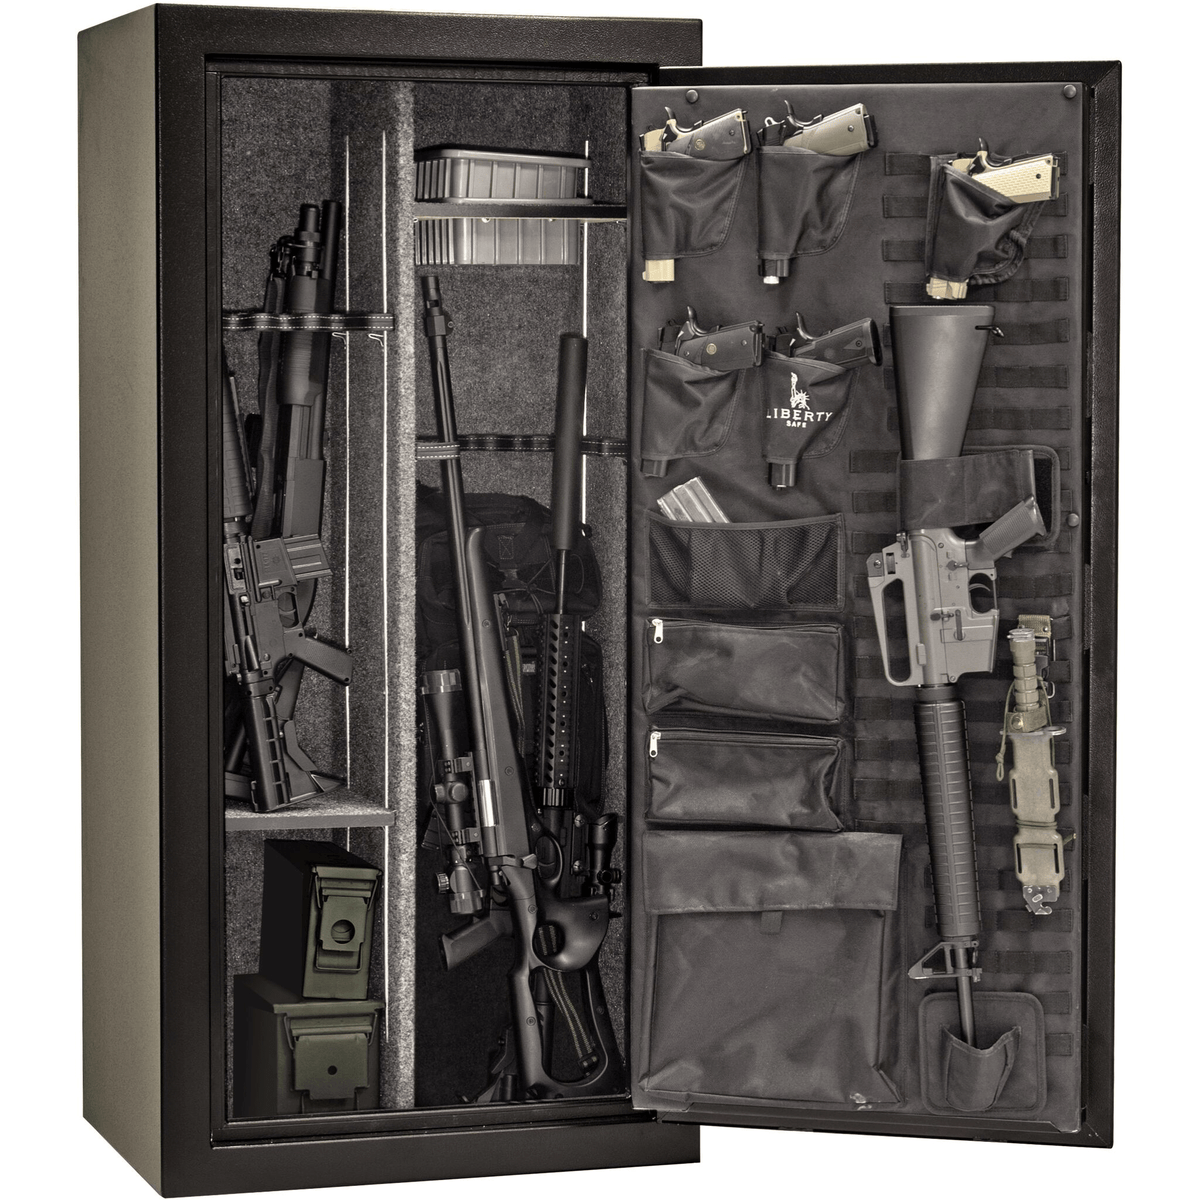 "Tactical | 24 | 30 Minute Fire Protection | Black | Black Electronic Lock | 59.5""(H) x 28.25""(W) x 22""(D)"